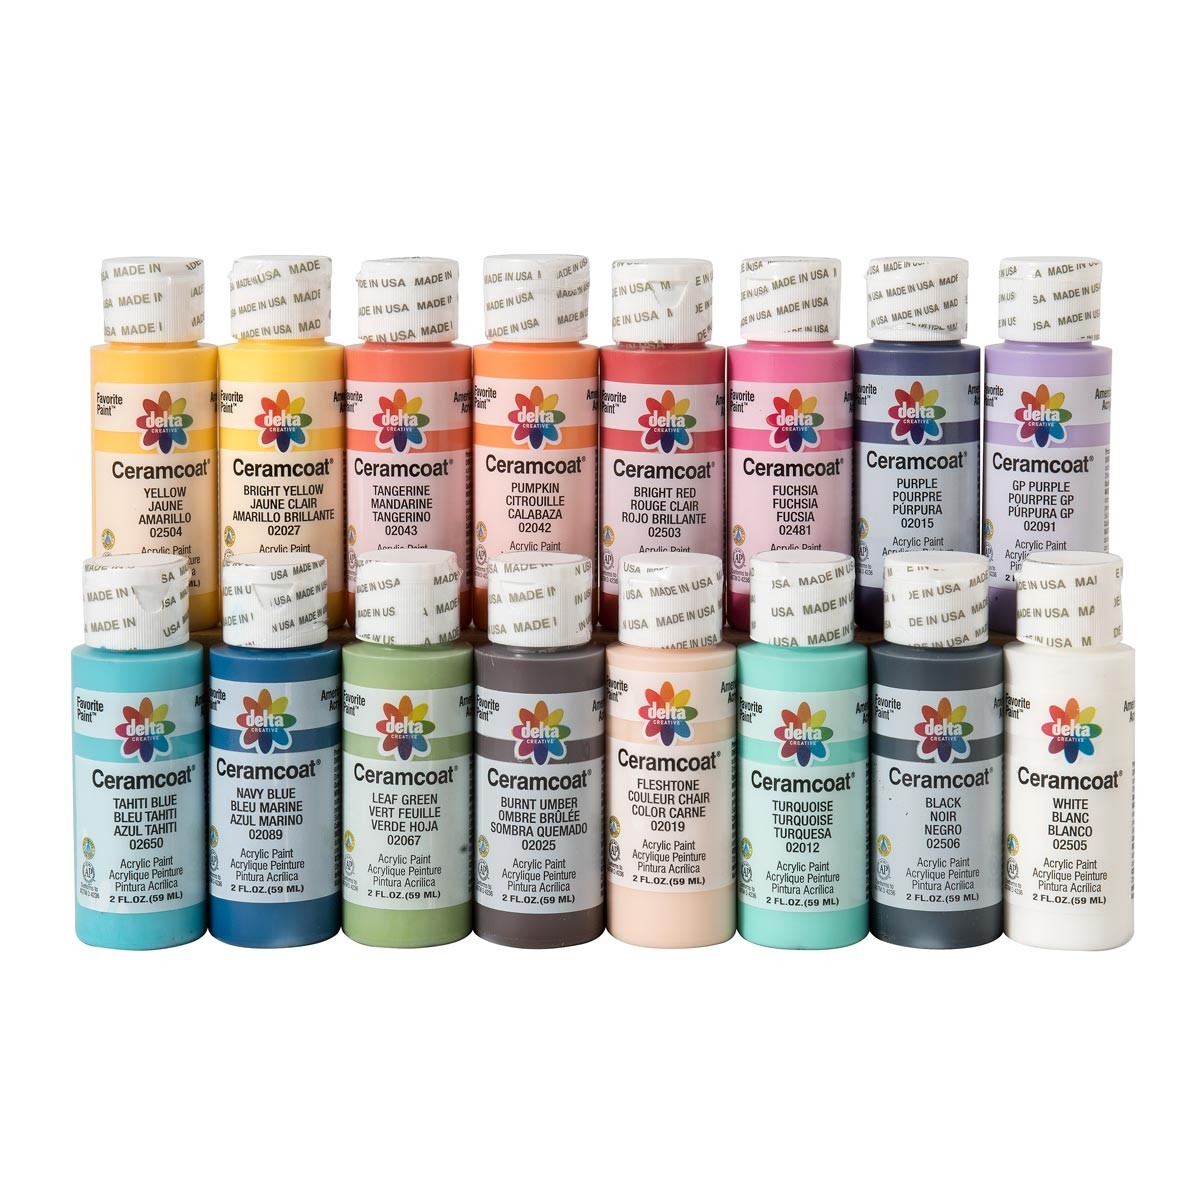 Delta Ceramcoat Acrylic Paints 2 Oz Bottle Painting Crafts Division Of Hofcraft The Painters Source